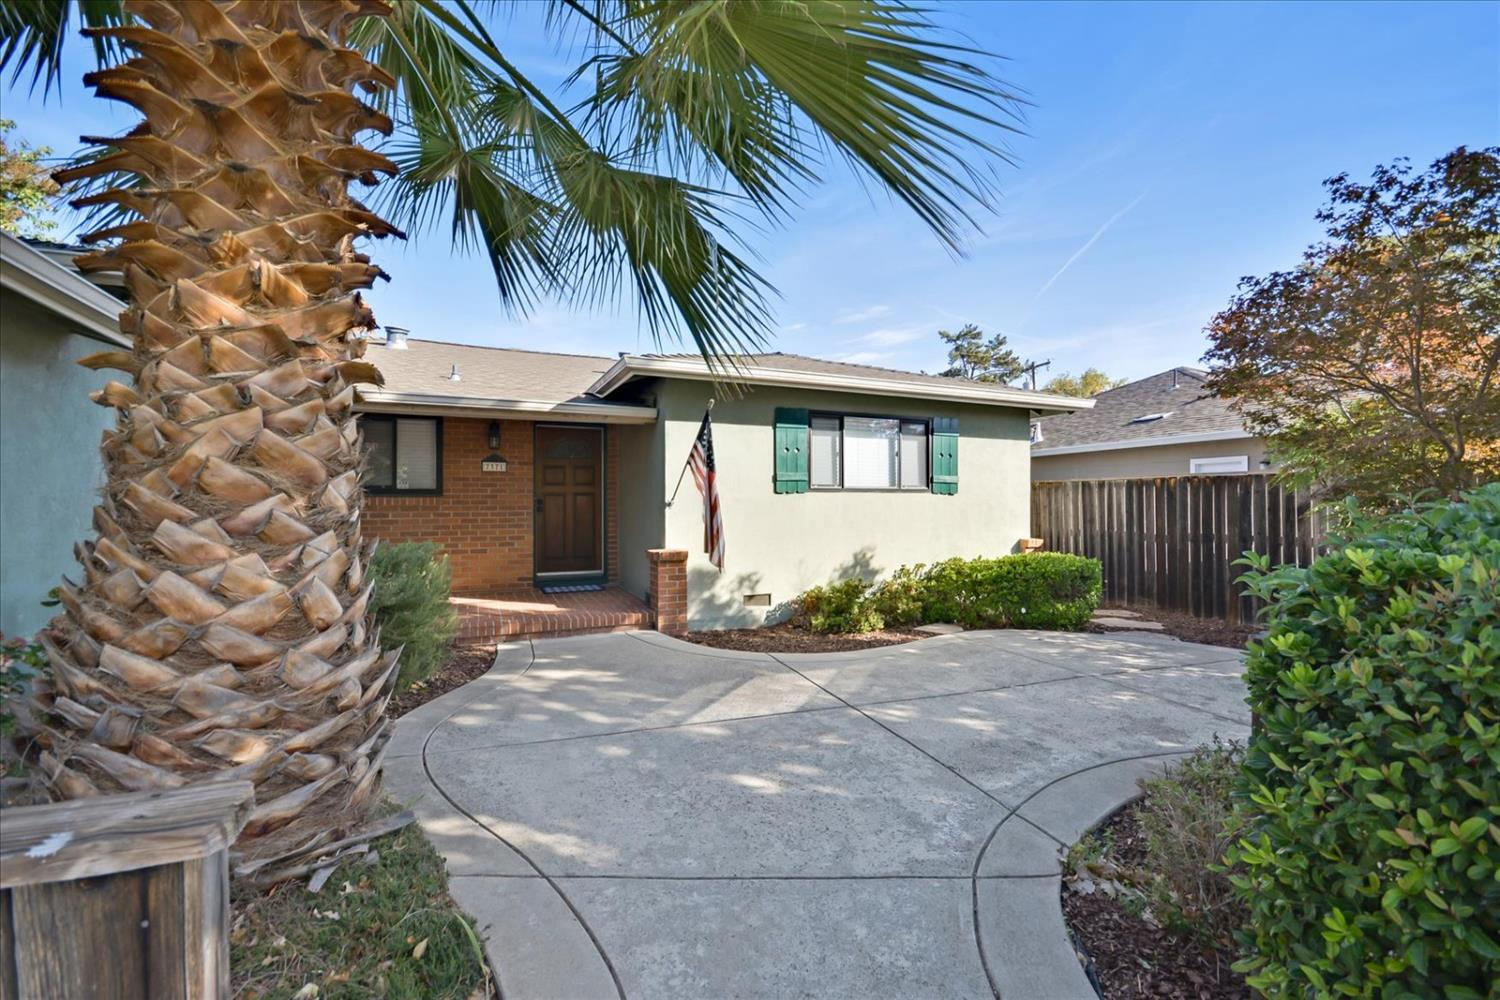 Charming 3 bedroom, 2 bathroom, 1,617 sq ft single story. From the moment you walk up to this home y